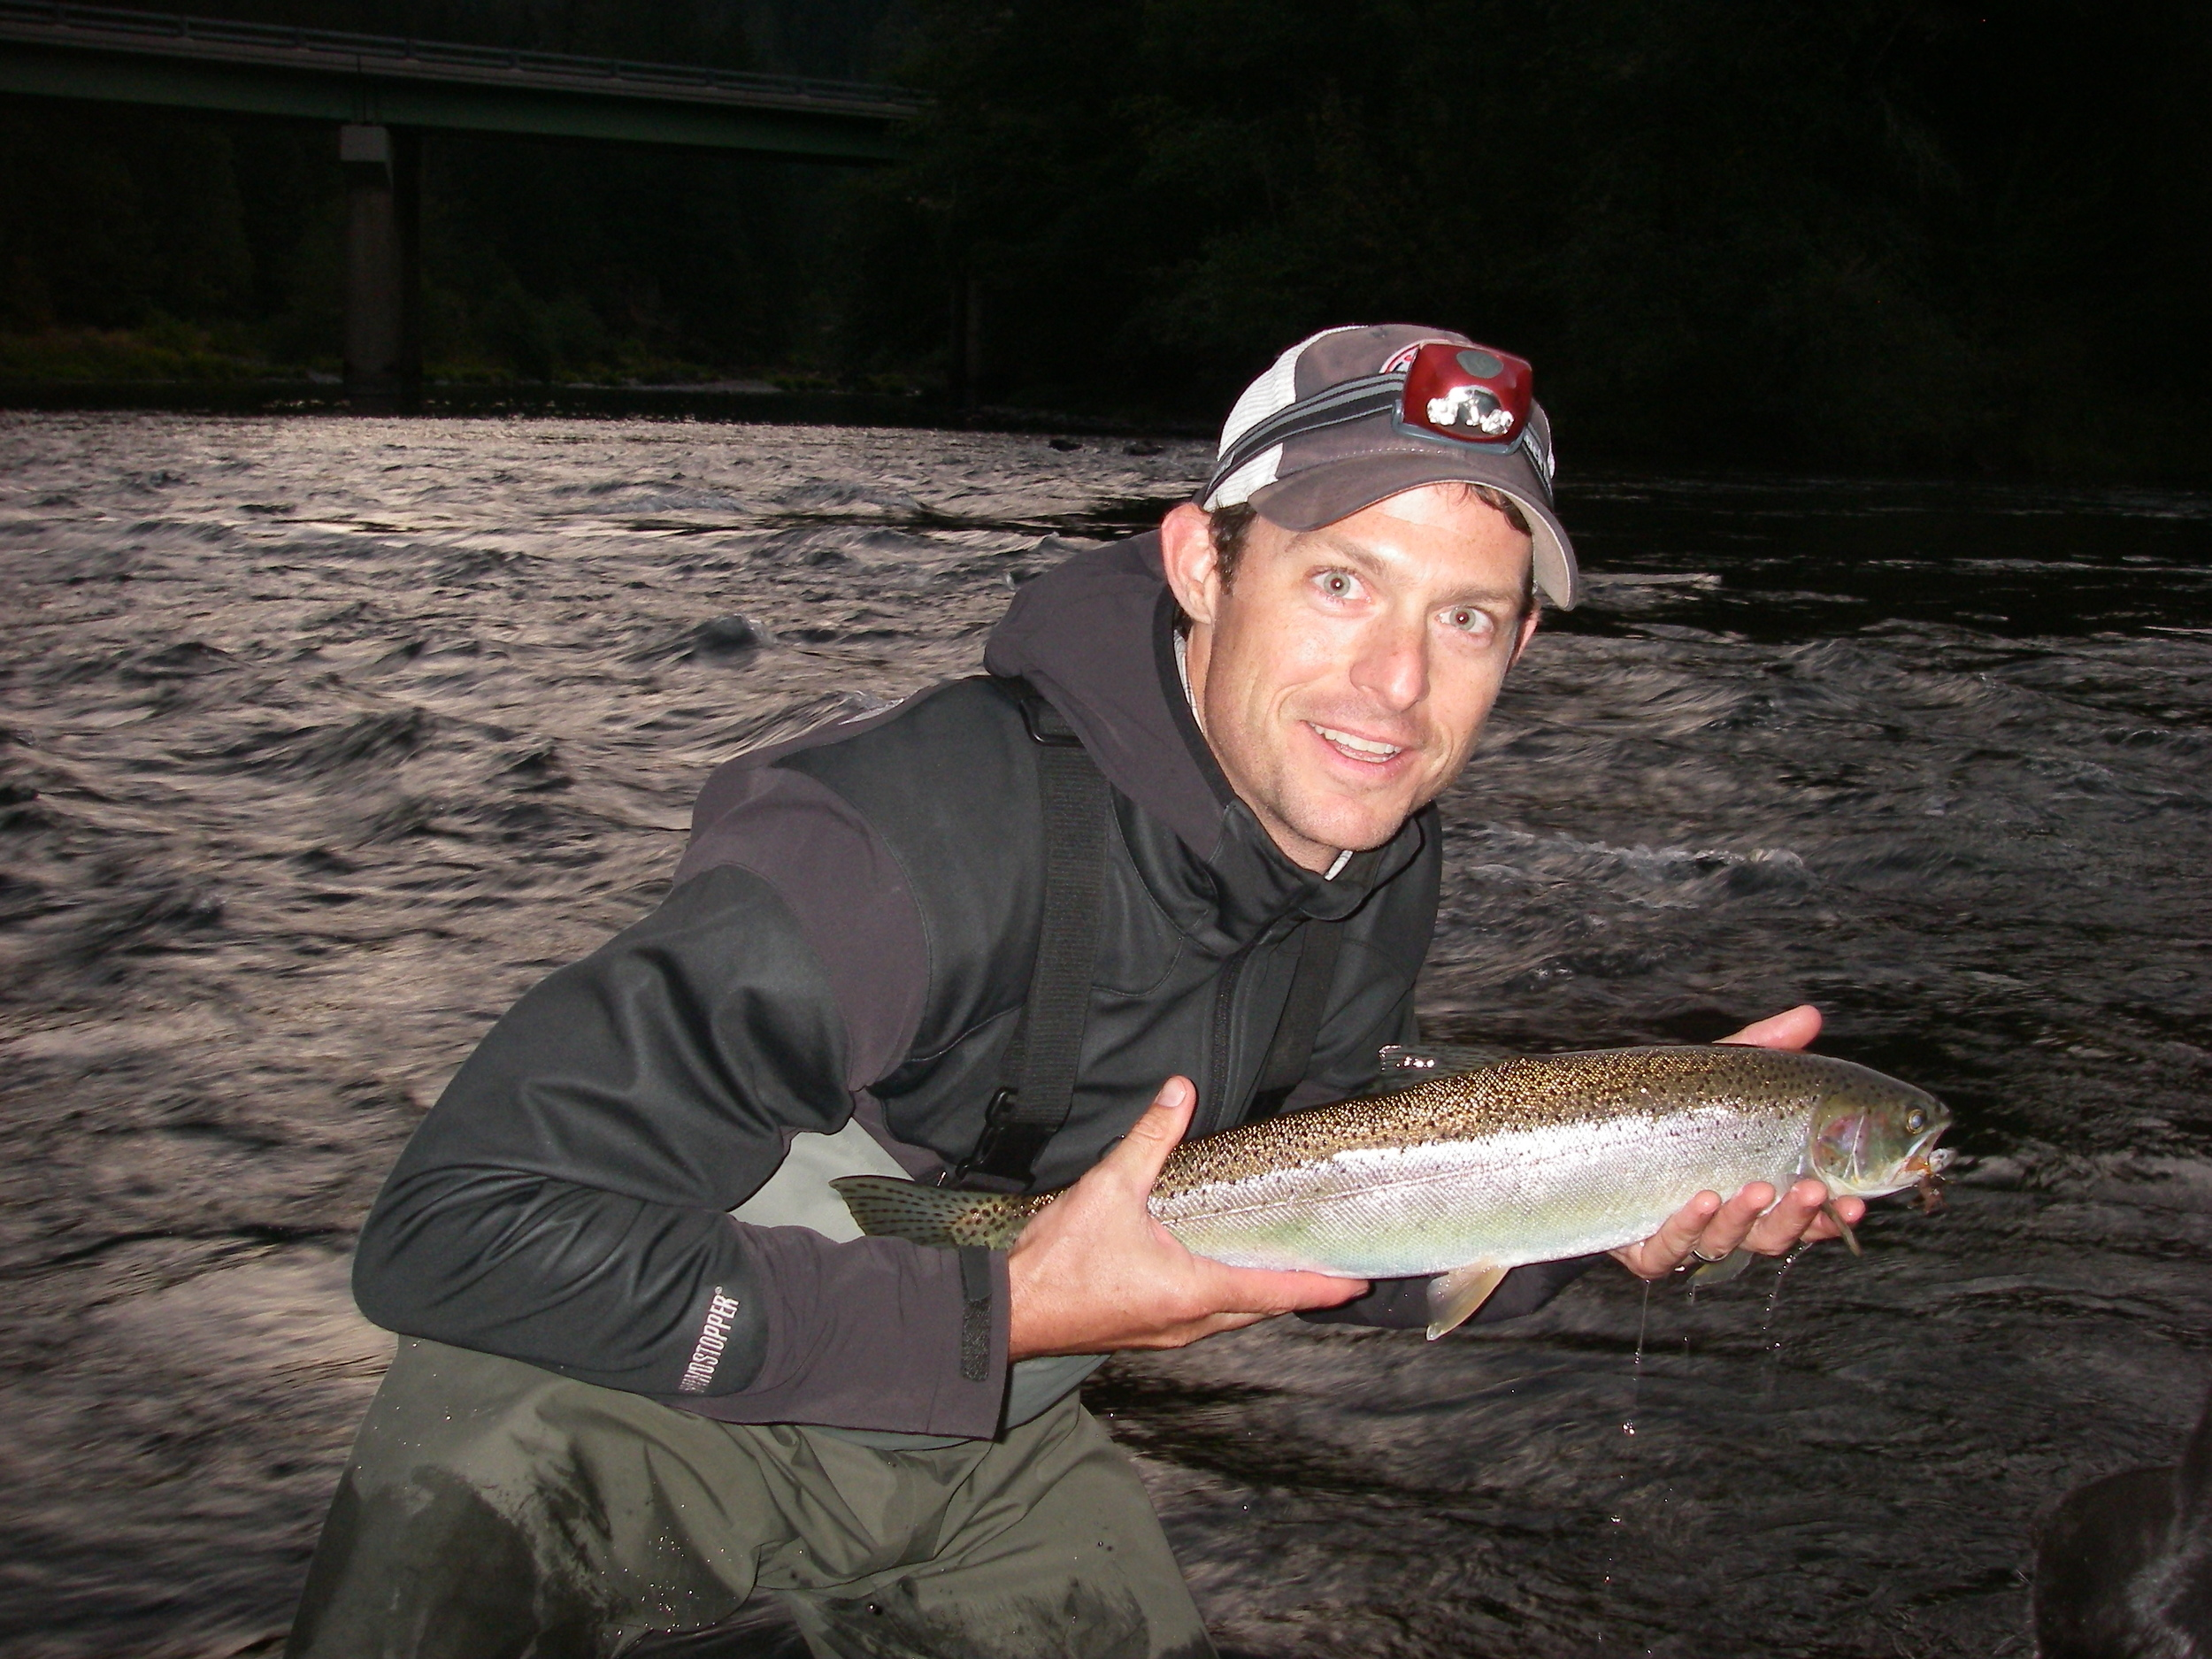 Paul Byron with his first steelhead, congrats Paul